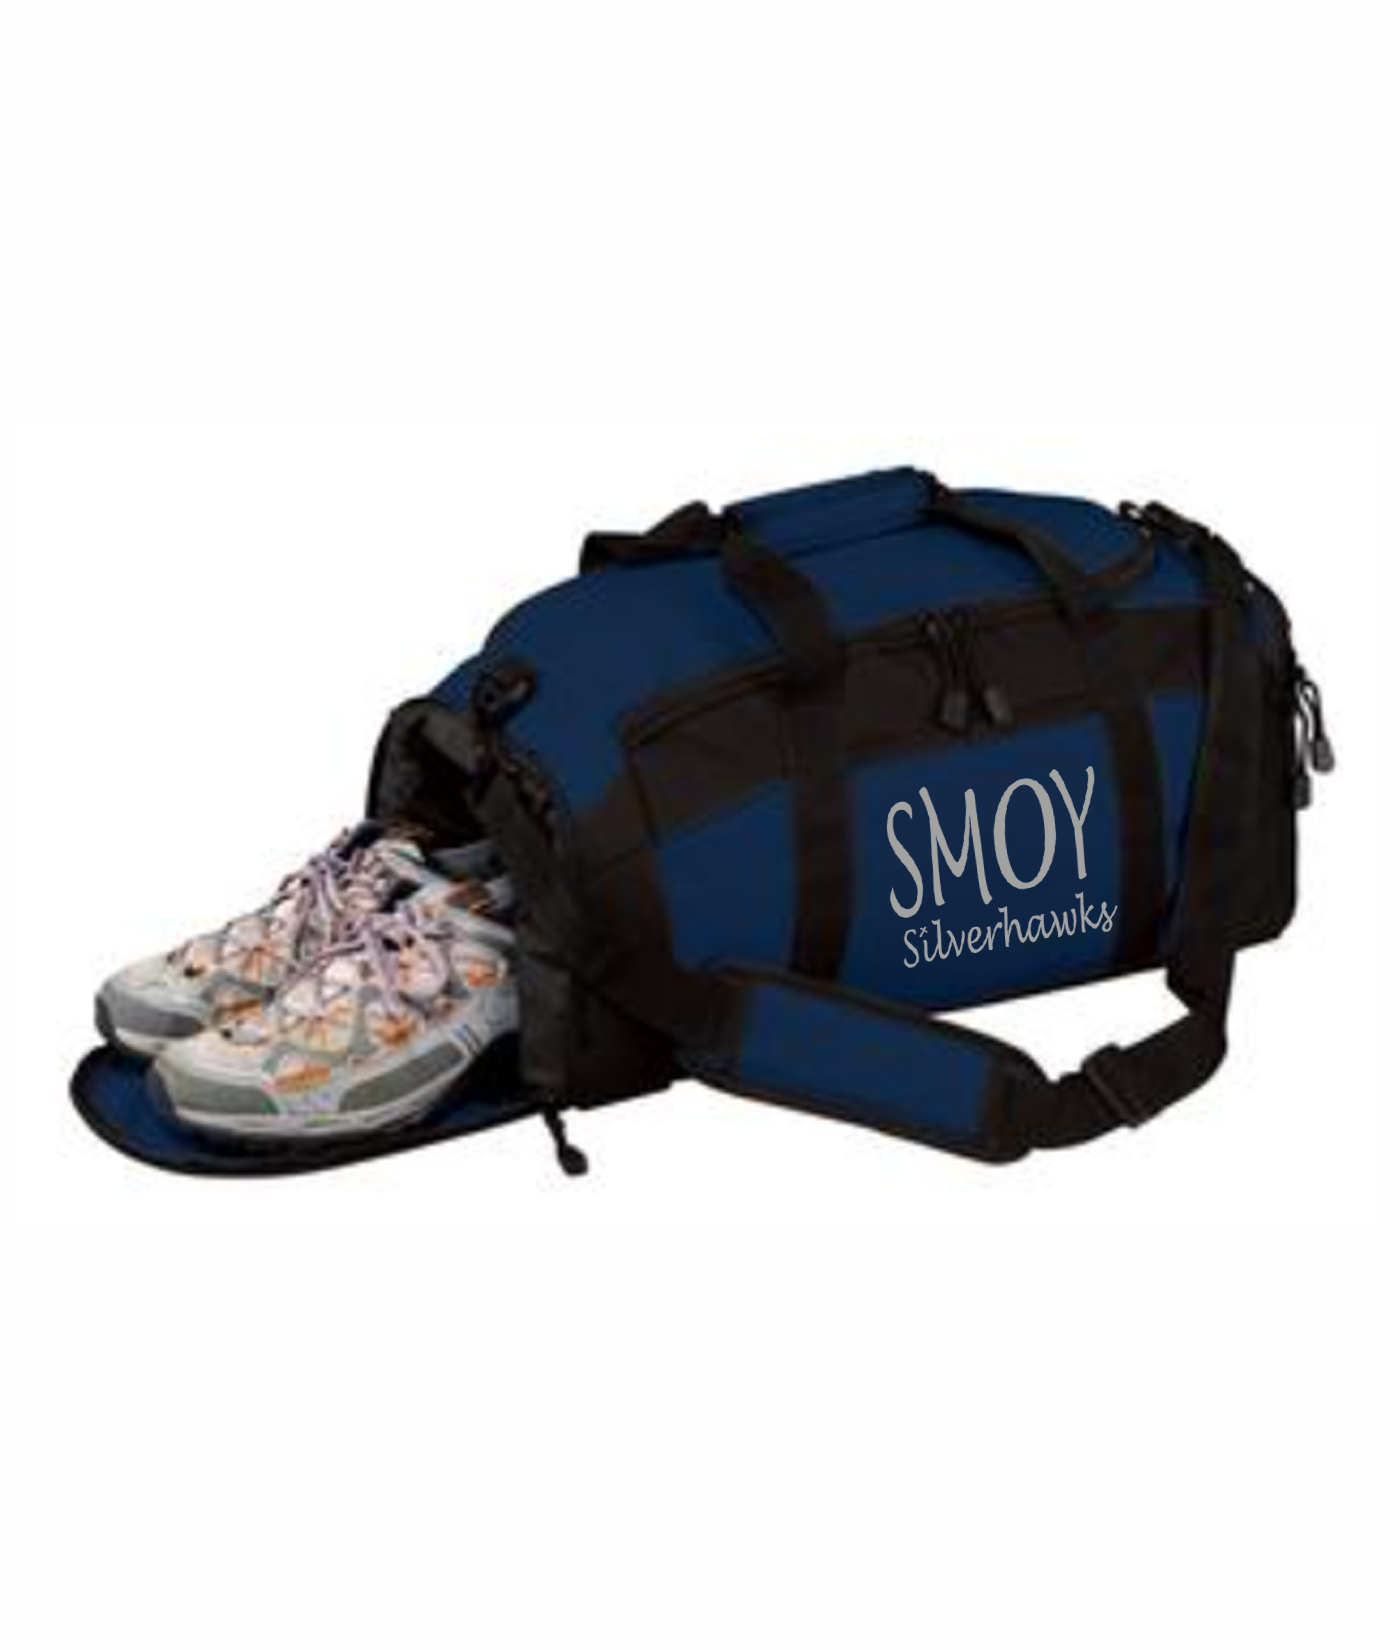 Duffle with Waterproof Shoe Pocket SMOY Original Silver